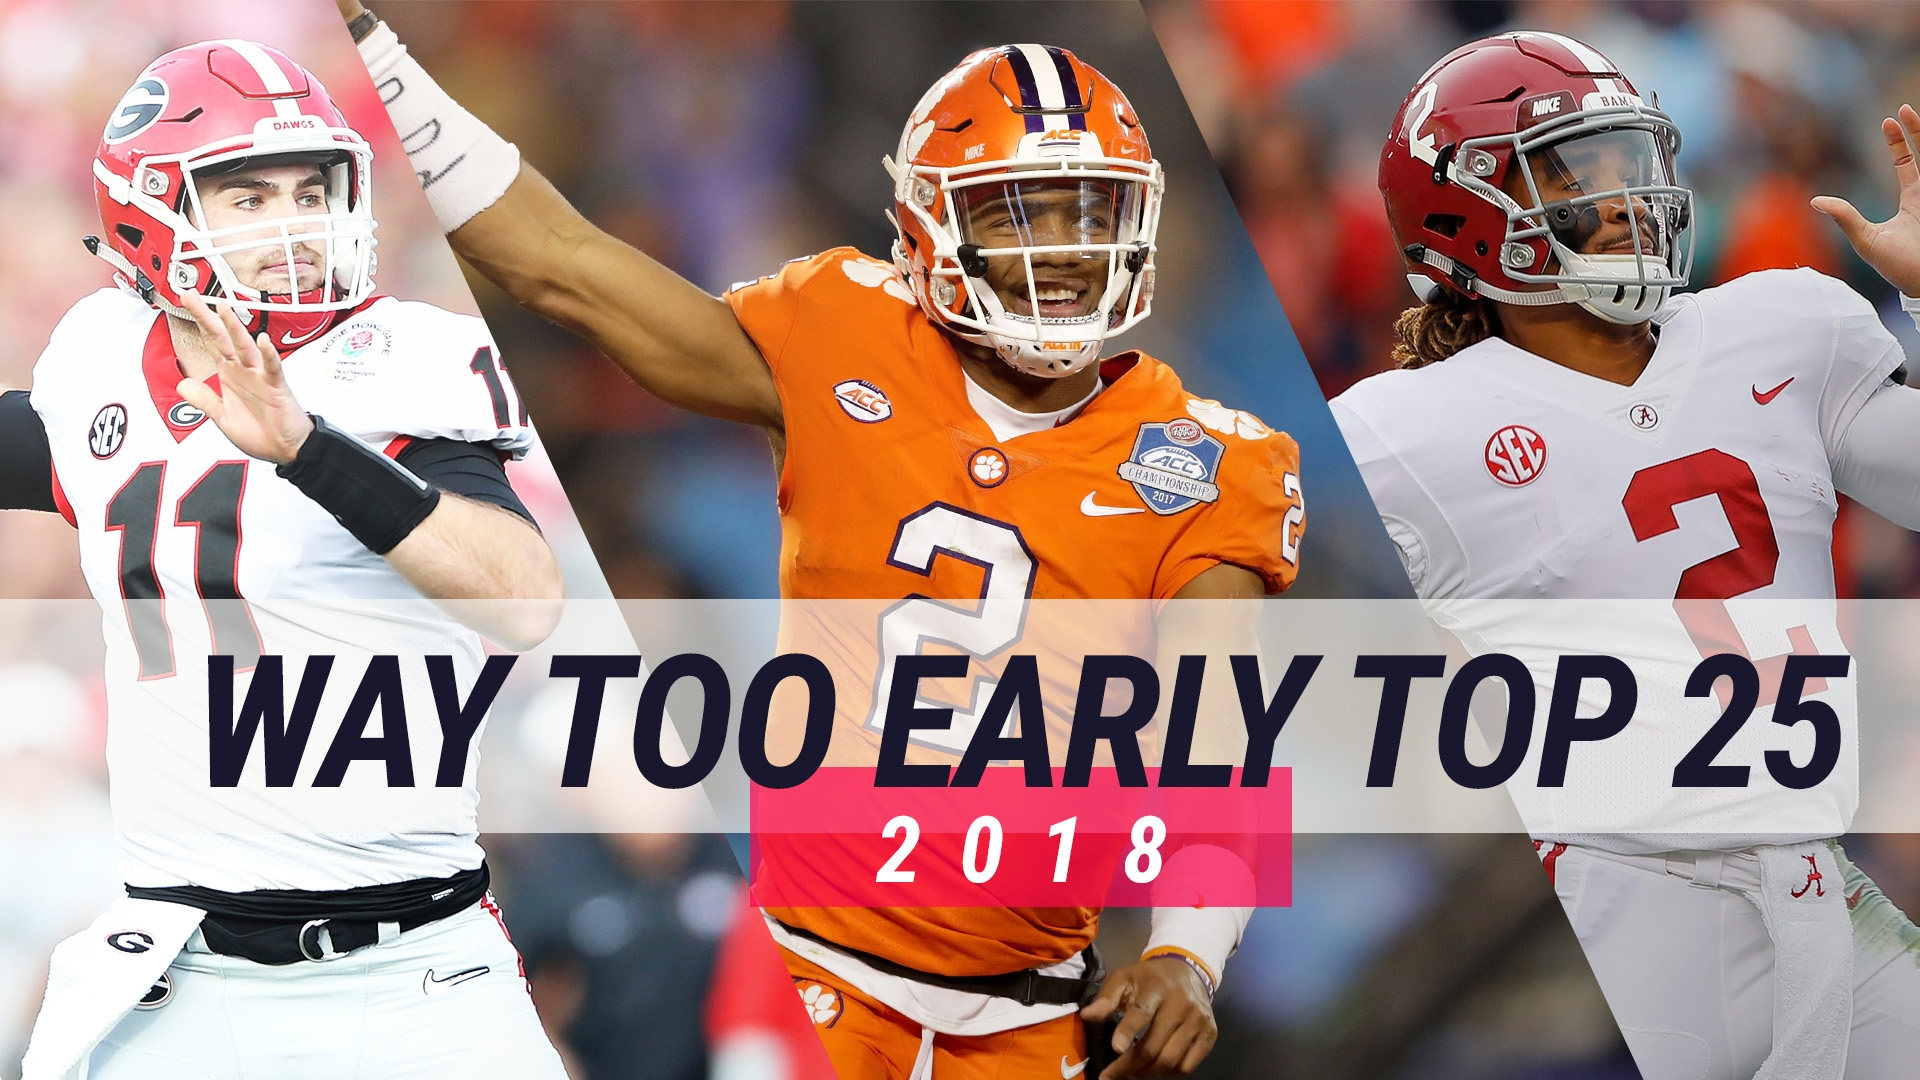 College football top-25 season previews  What to expect from each team in  2018  c7d0d320a